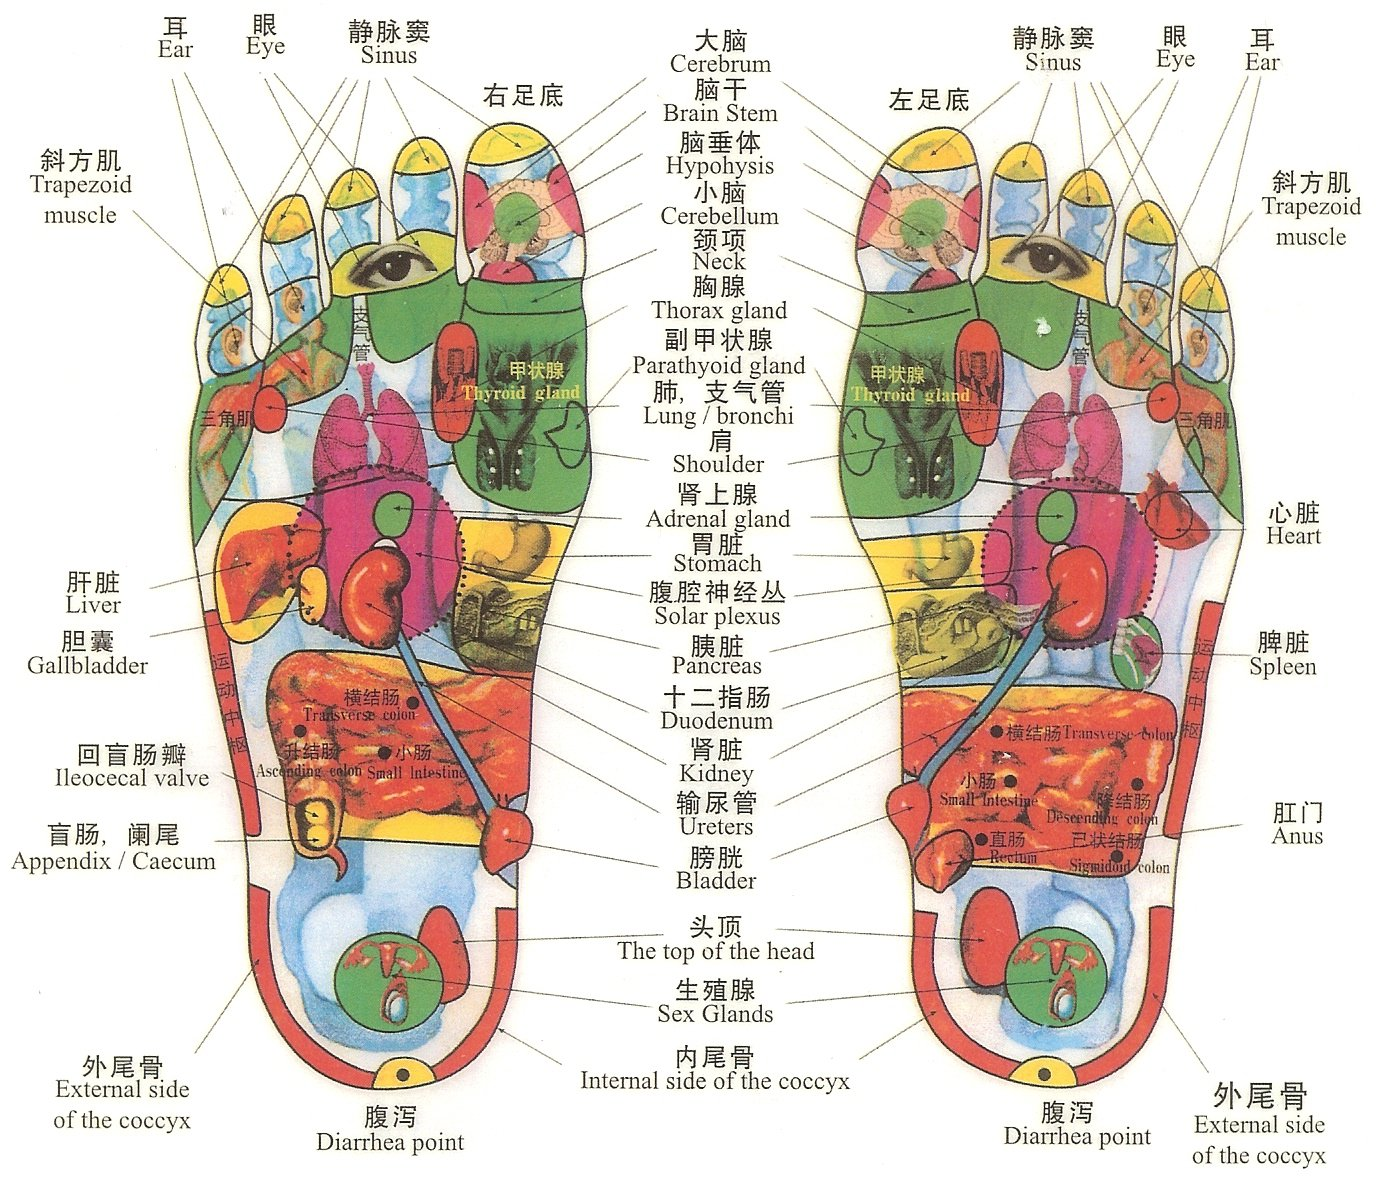 Tcm Diagnosis  Foot Reflexology, Dec 9th • Oriental. Best Internet Providers Chicago. Humira And Methotrexate Track Freight Shipment. Singapore Air Credit Card Vw Lupo Gti Tuning. Collaborative Tools For Business. How Long Can You Take Nexium. Anger Management For Parents. Genesis Rehabilitation Locations. Administrator Training Courses